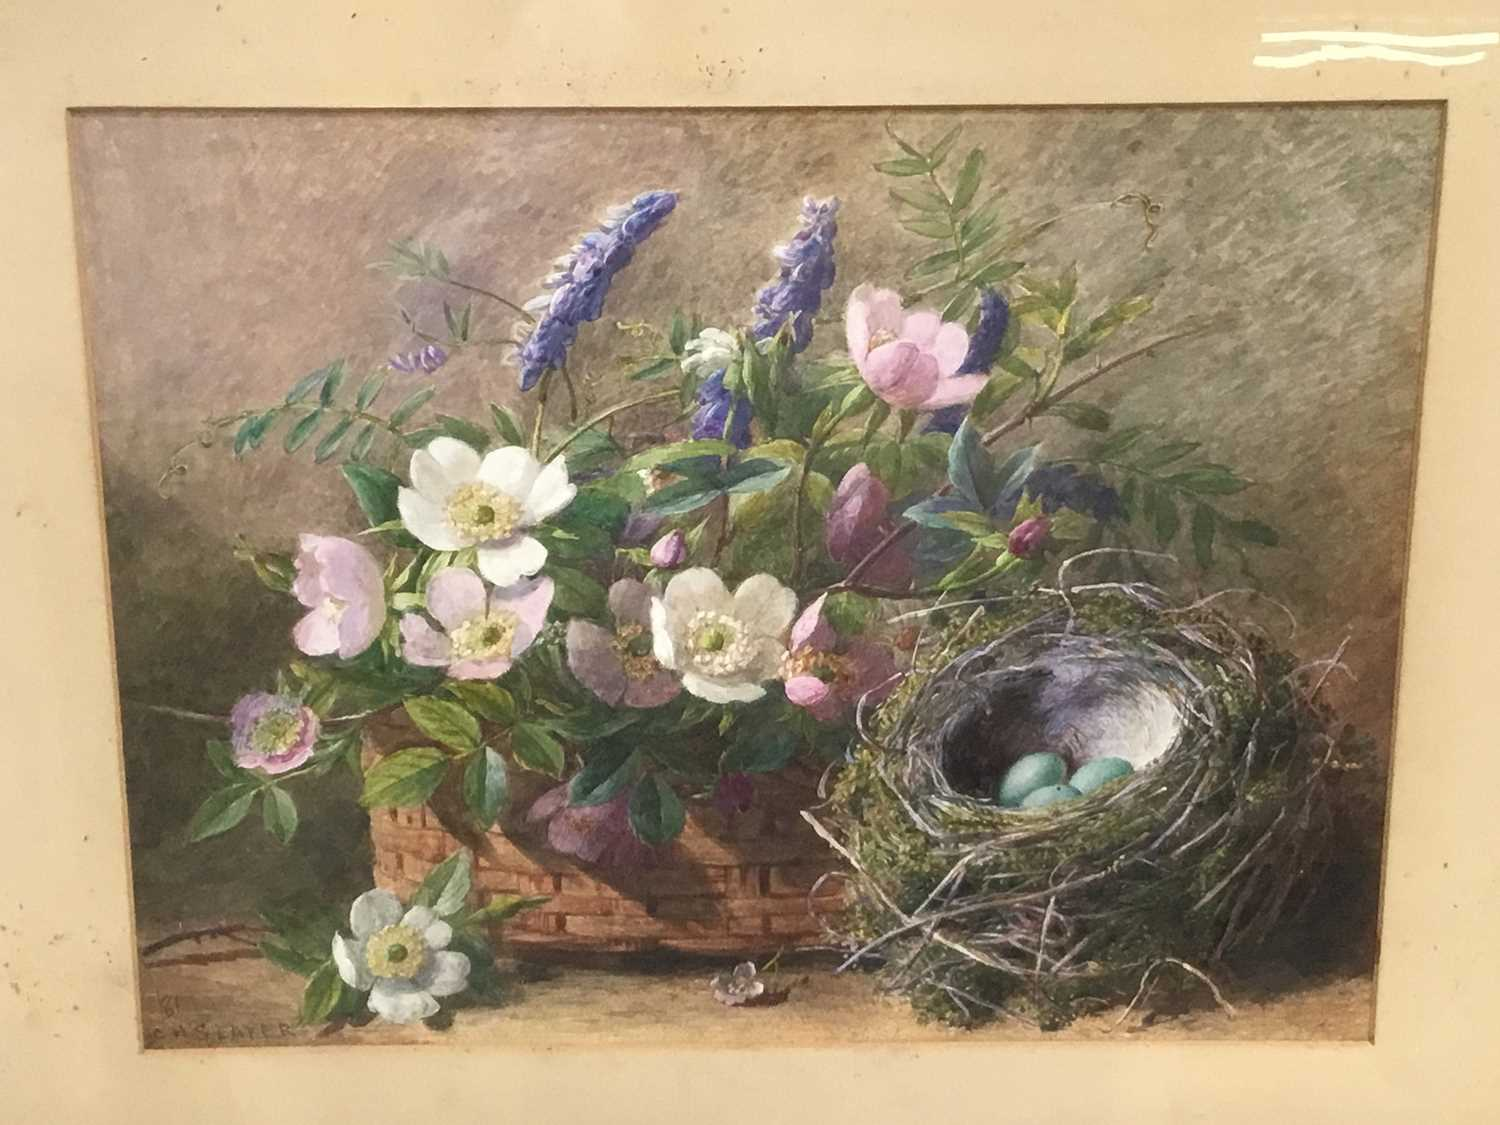 Lot 20-Slater, late Victorian watercolour - still life of flowers and birds eggs in a nest, signed, in glazed frame